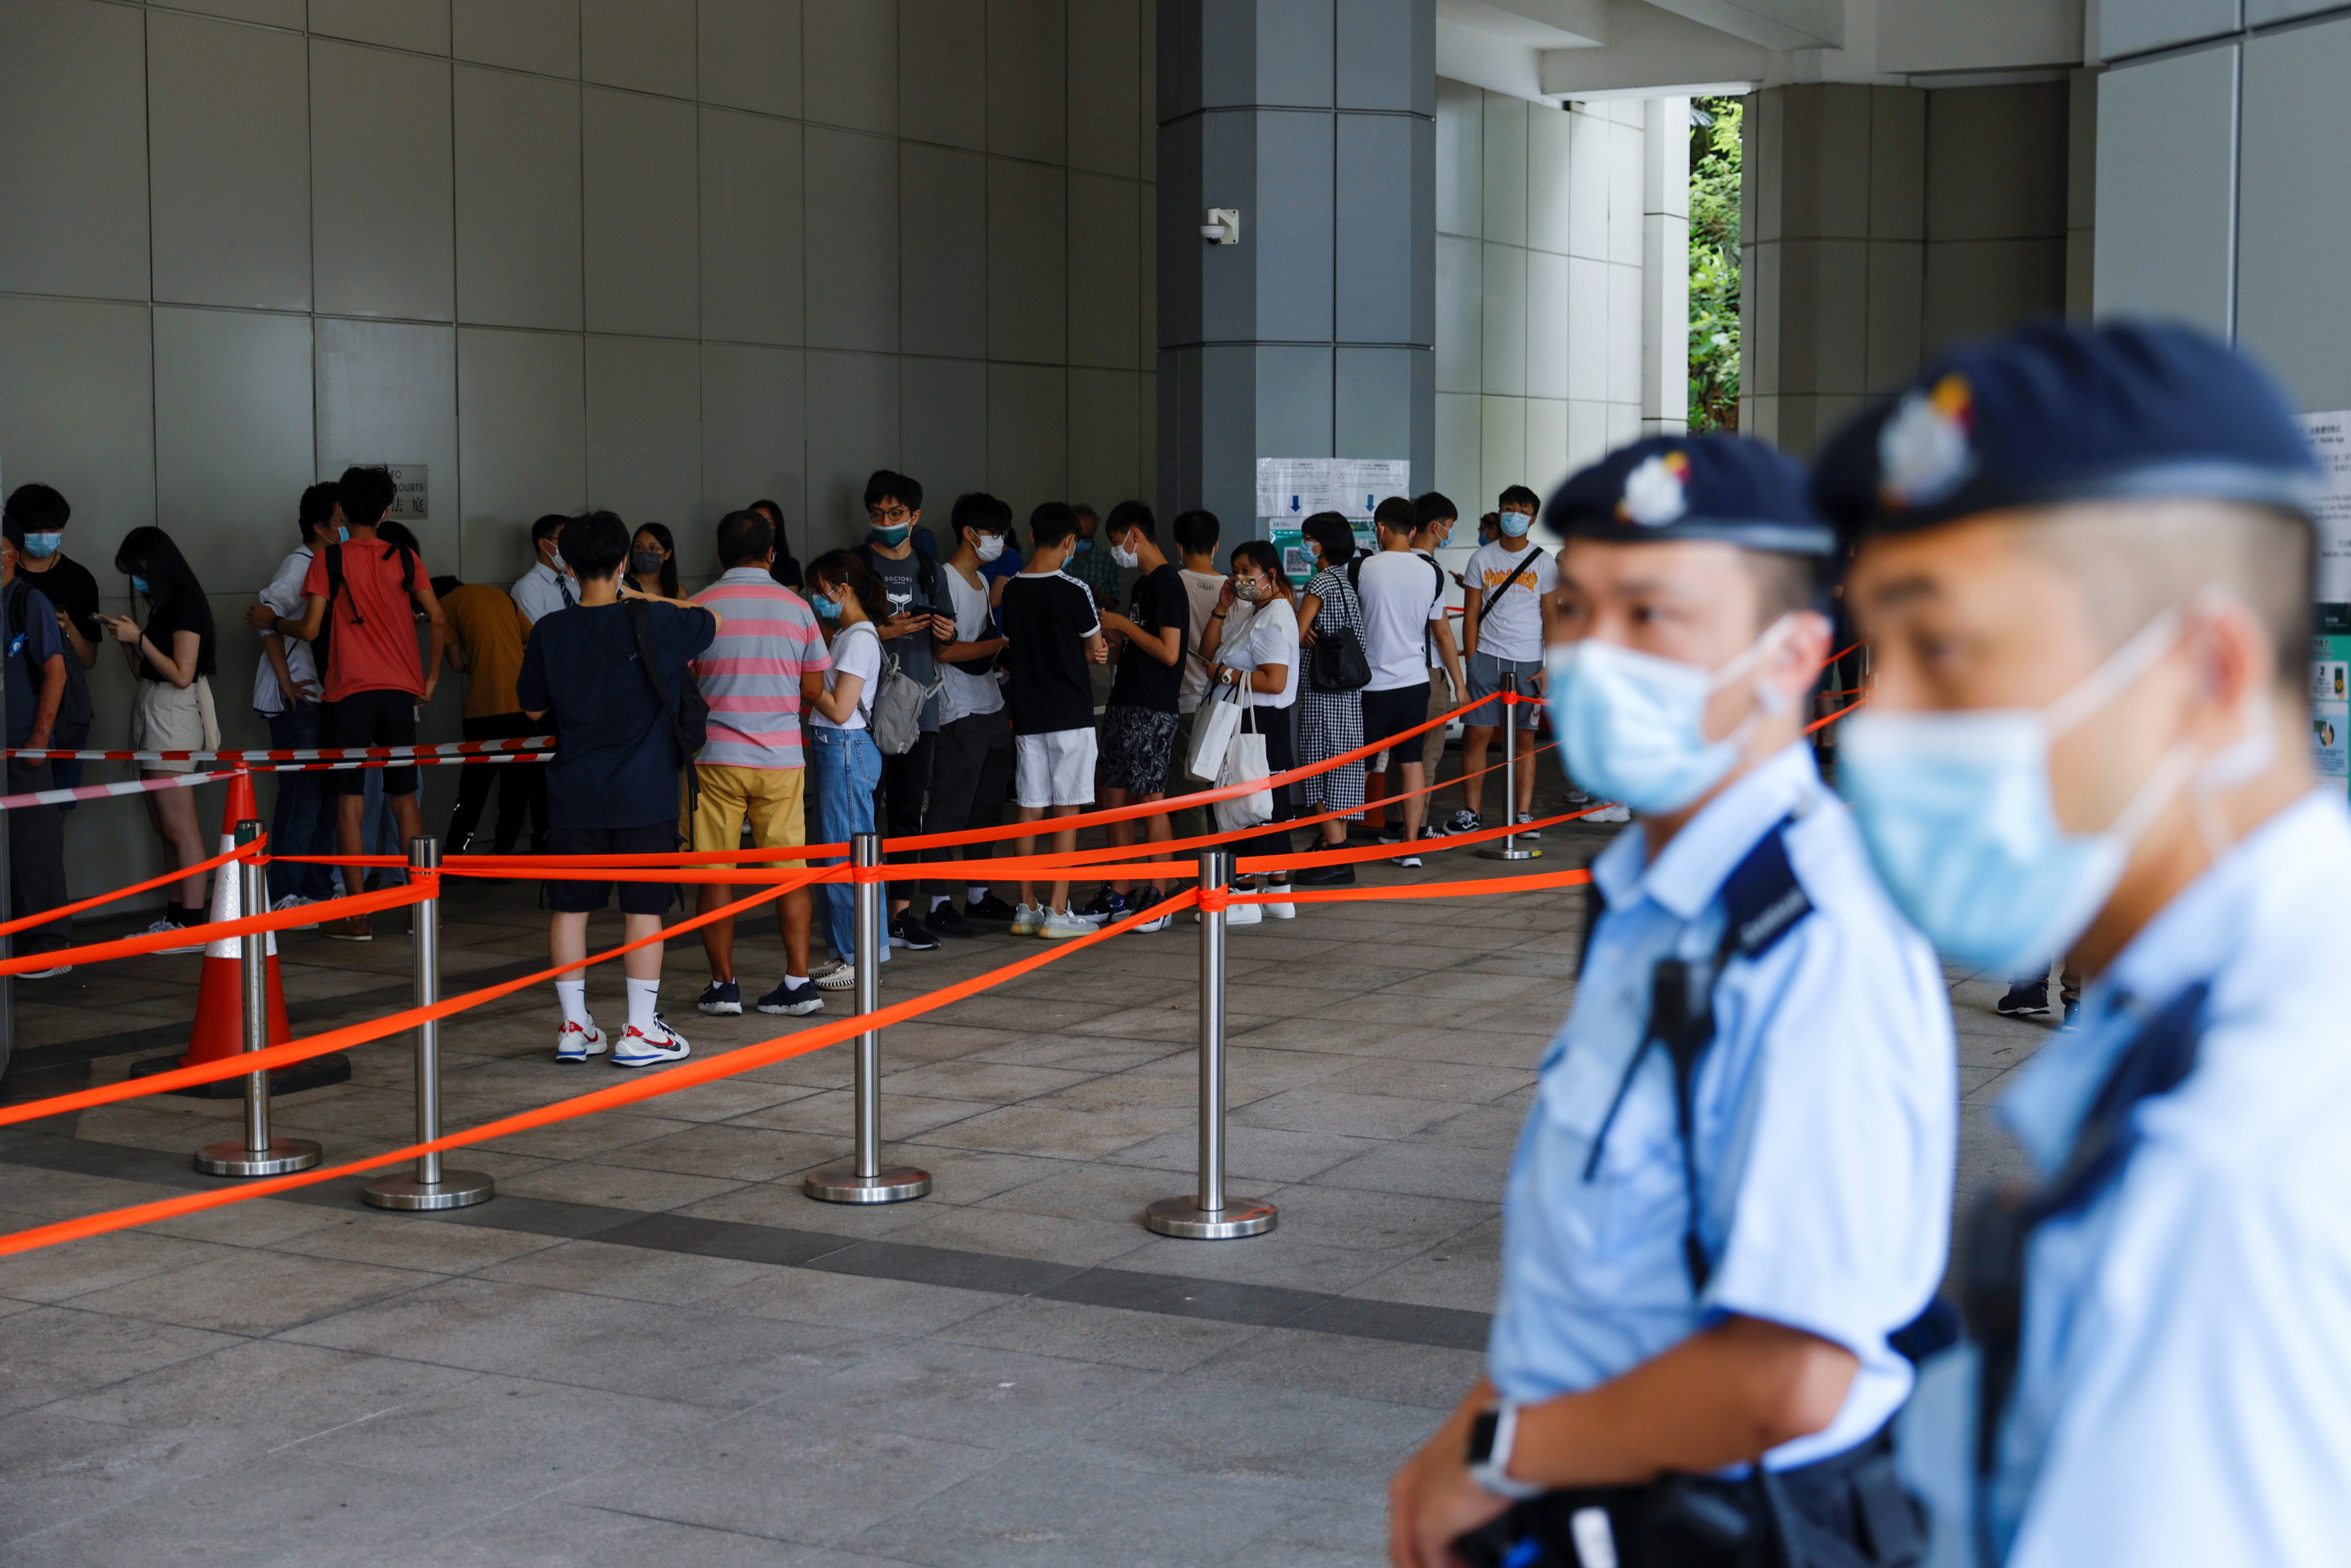 Supporters of Tong Ying-kit, the first person charged under a new national security law, queue up for attending the hearing at the High Court in Hong Kong, China. July 30, 2021. REUTERS/Tyrone Siu